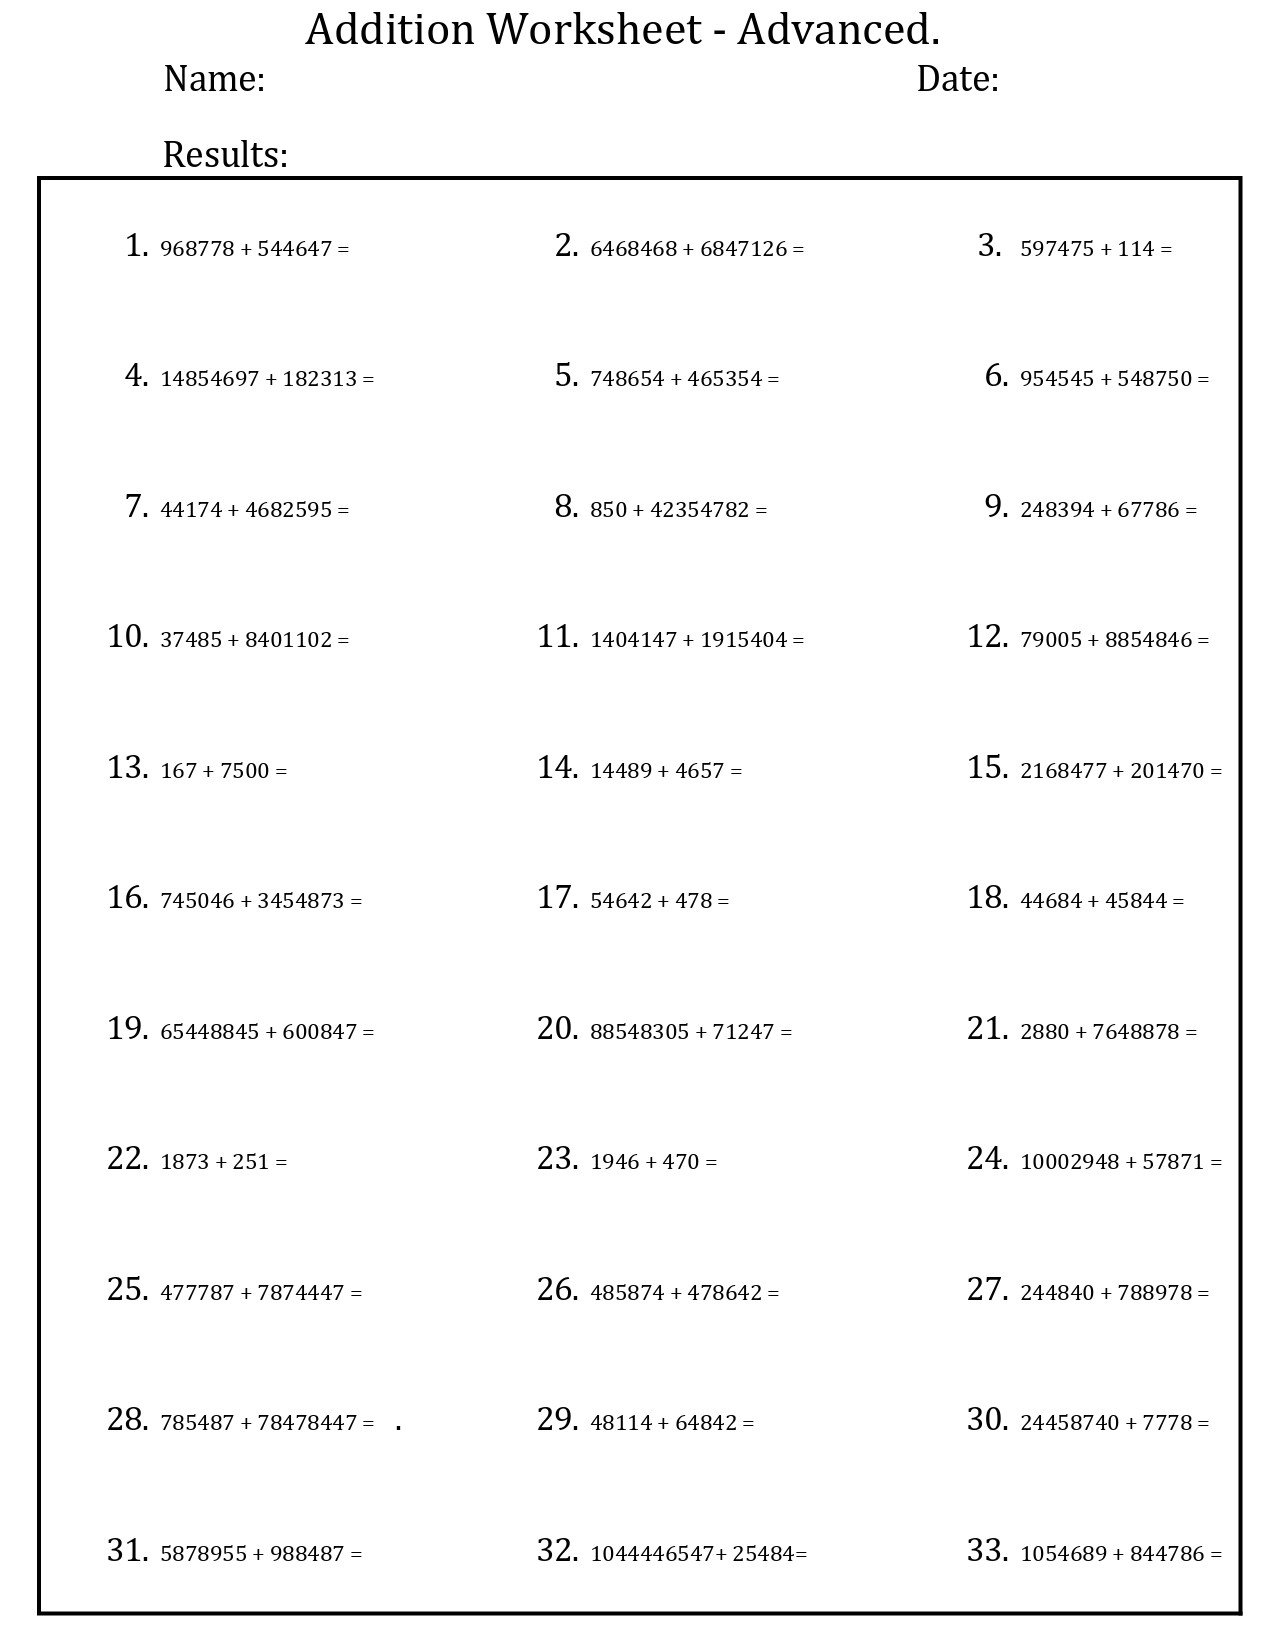 Ck Worksheets for Kindergarten Math Worksheet Simple Worksheets for Kindergarten Simple